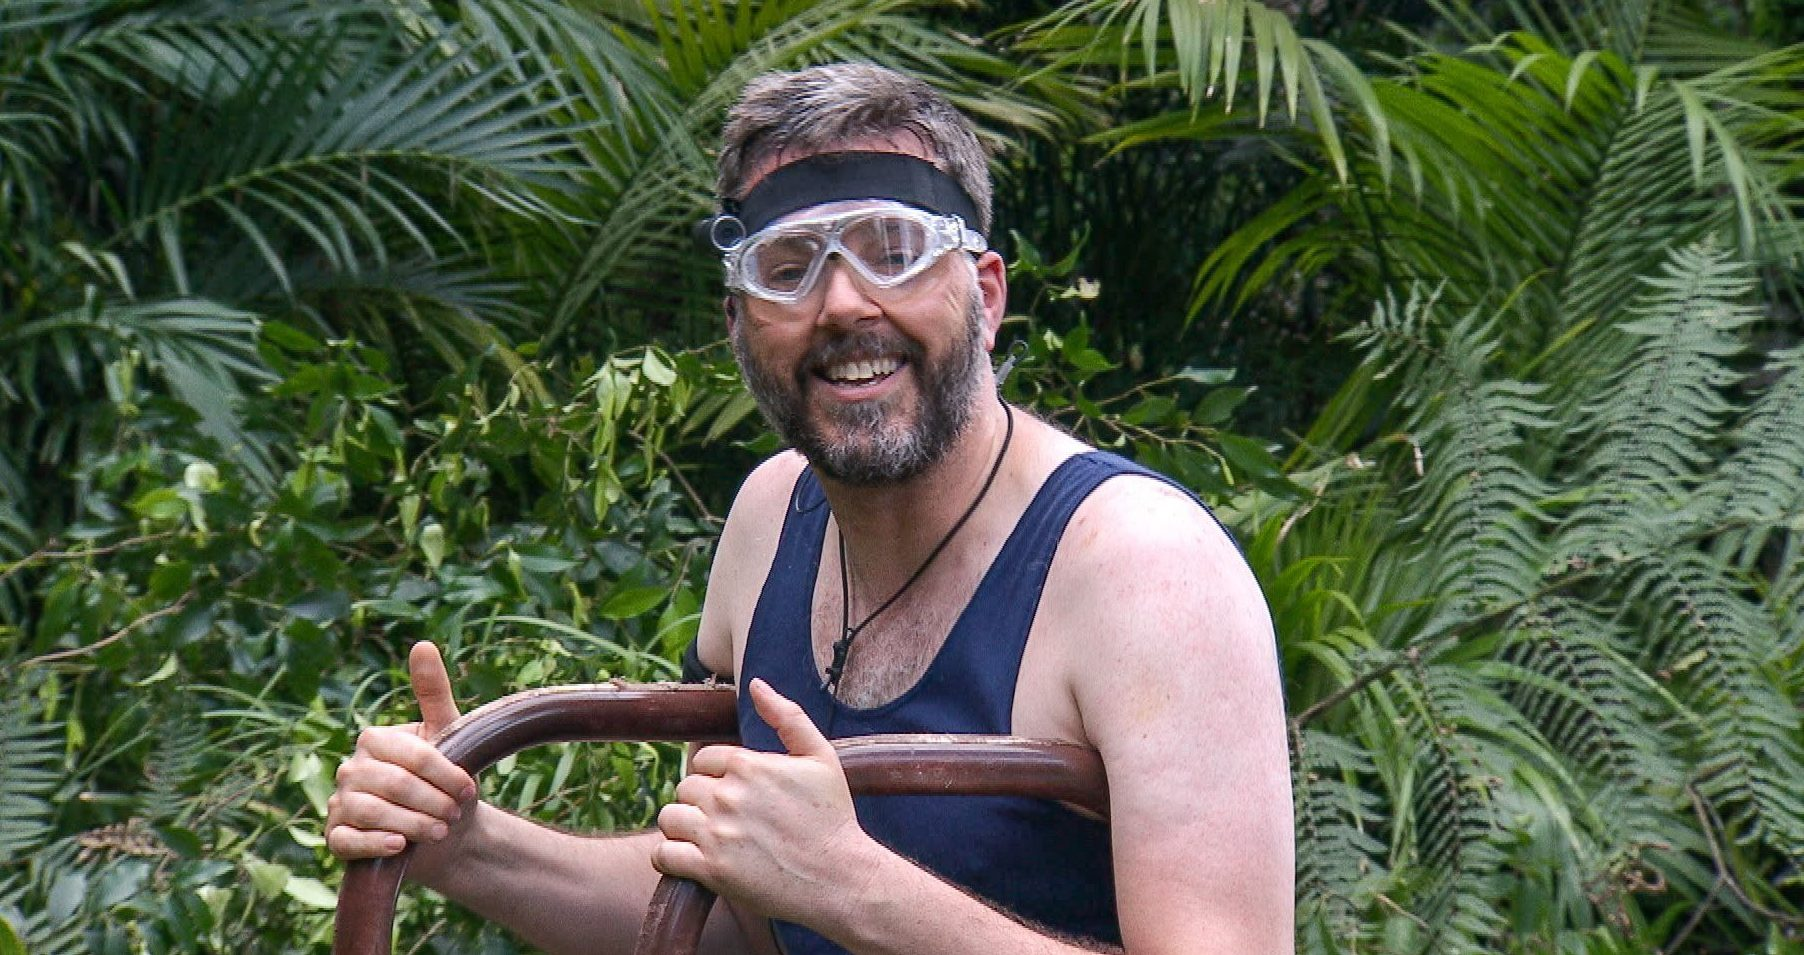 STRICT EMBARGO - NOT FOR USE BEFORE 22:10 GMT SATURDAY 25th NOVEMBER 2017. EDITORIAL USE ONLY - NO MERCHANDISING Mandatory Credit: Photo by ITV/REX/Shutterstock (9240029gf) Bushtucker Trial: The Temple of Gloom - Iain Lee 'I'm a Celebrity... Get Me Out of Here!' TV Show, Series 17, Australia - 25 Nov 2017